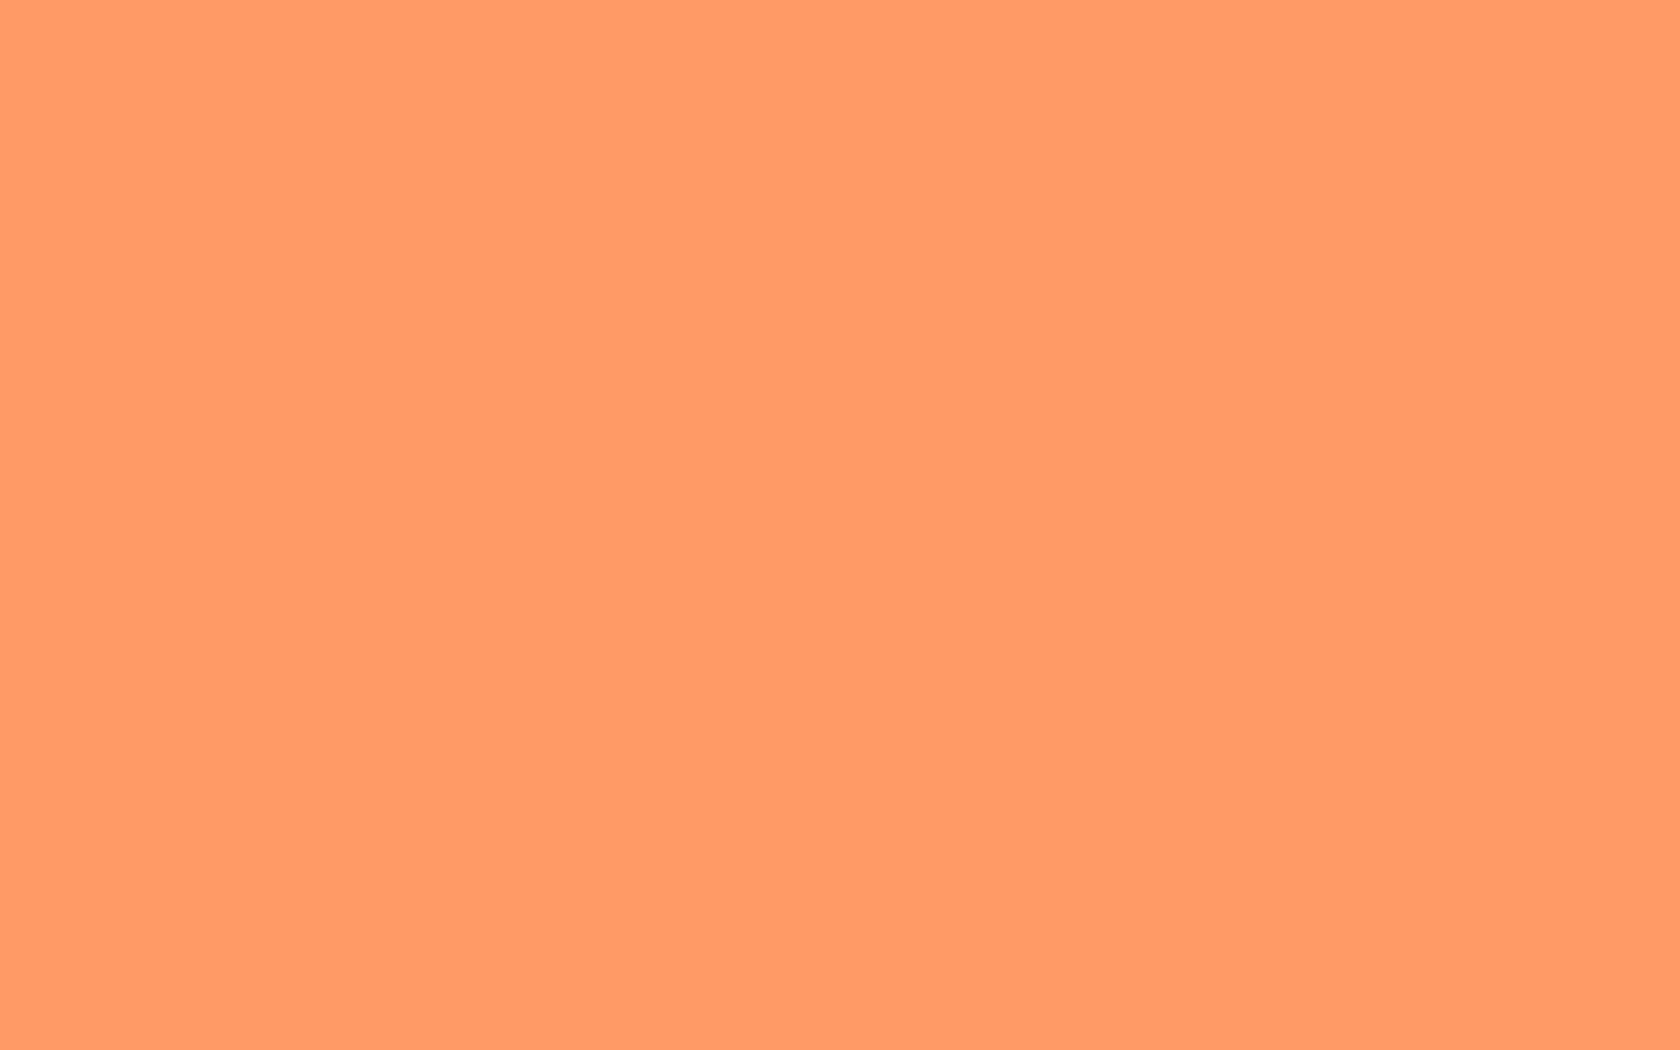 1680x1050 Atomic Tangerine Solid Color Background